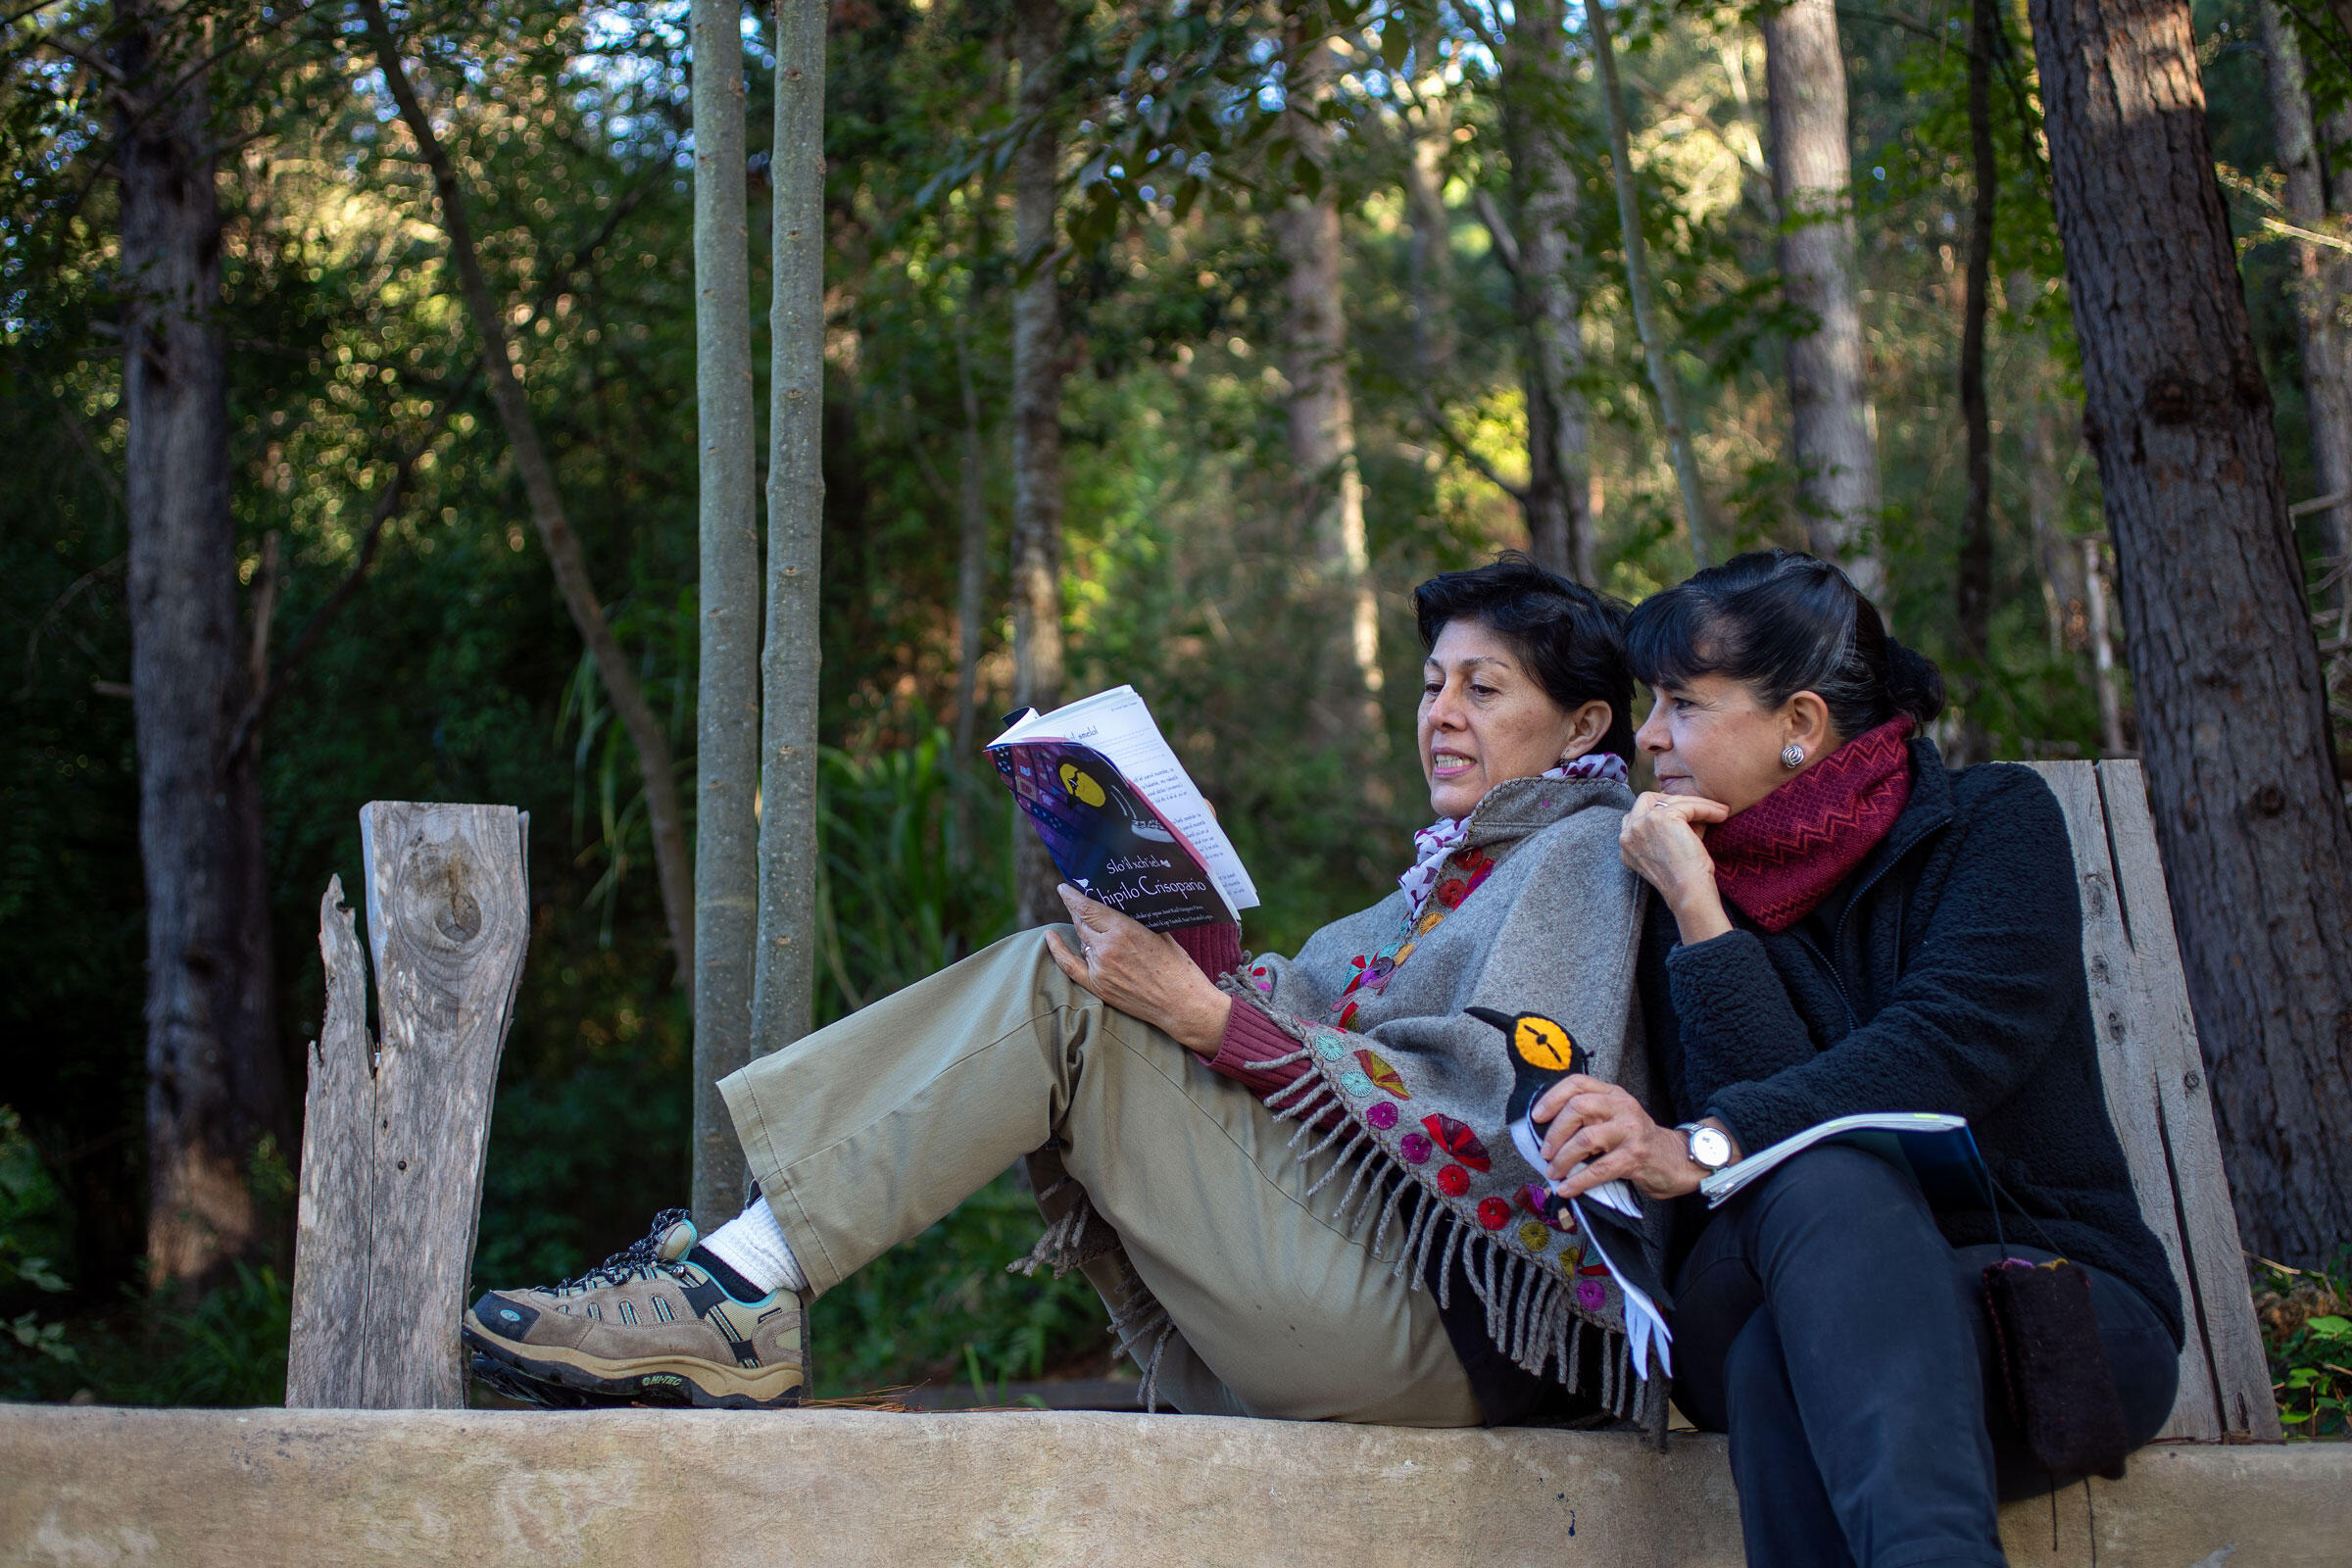 Pronatura's Claudia Macías Caballero (left) and Maria de los Angeles Azuara, holding a plushy Golden-cheeked Warbler, readi Chipilo's story in Moxviquil Ecological Reserve in Chiapas, where some of the songbirds overwinter. Jorge Silva Rivera